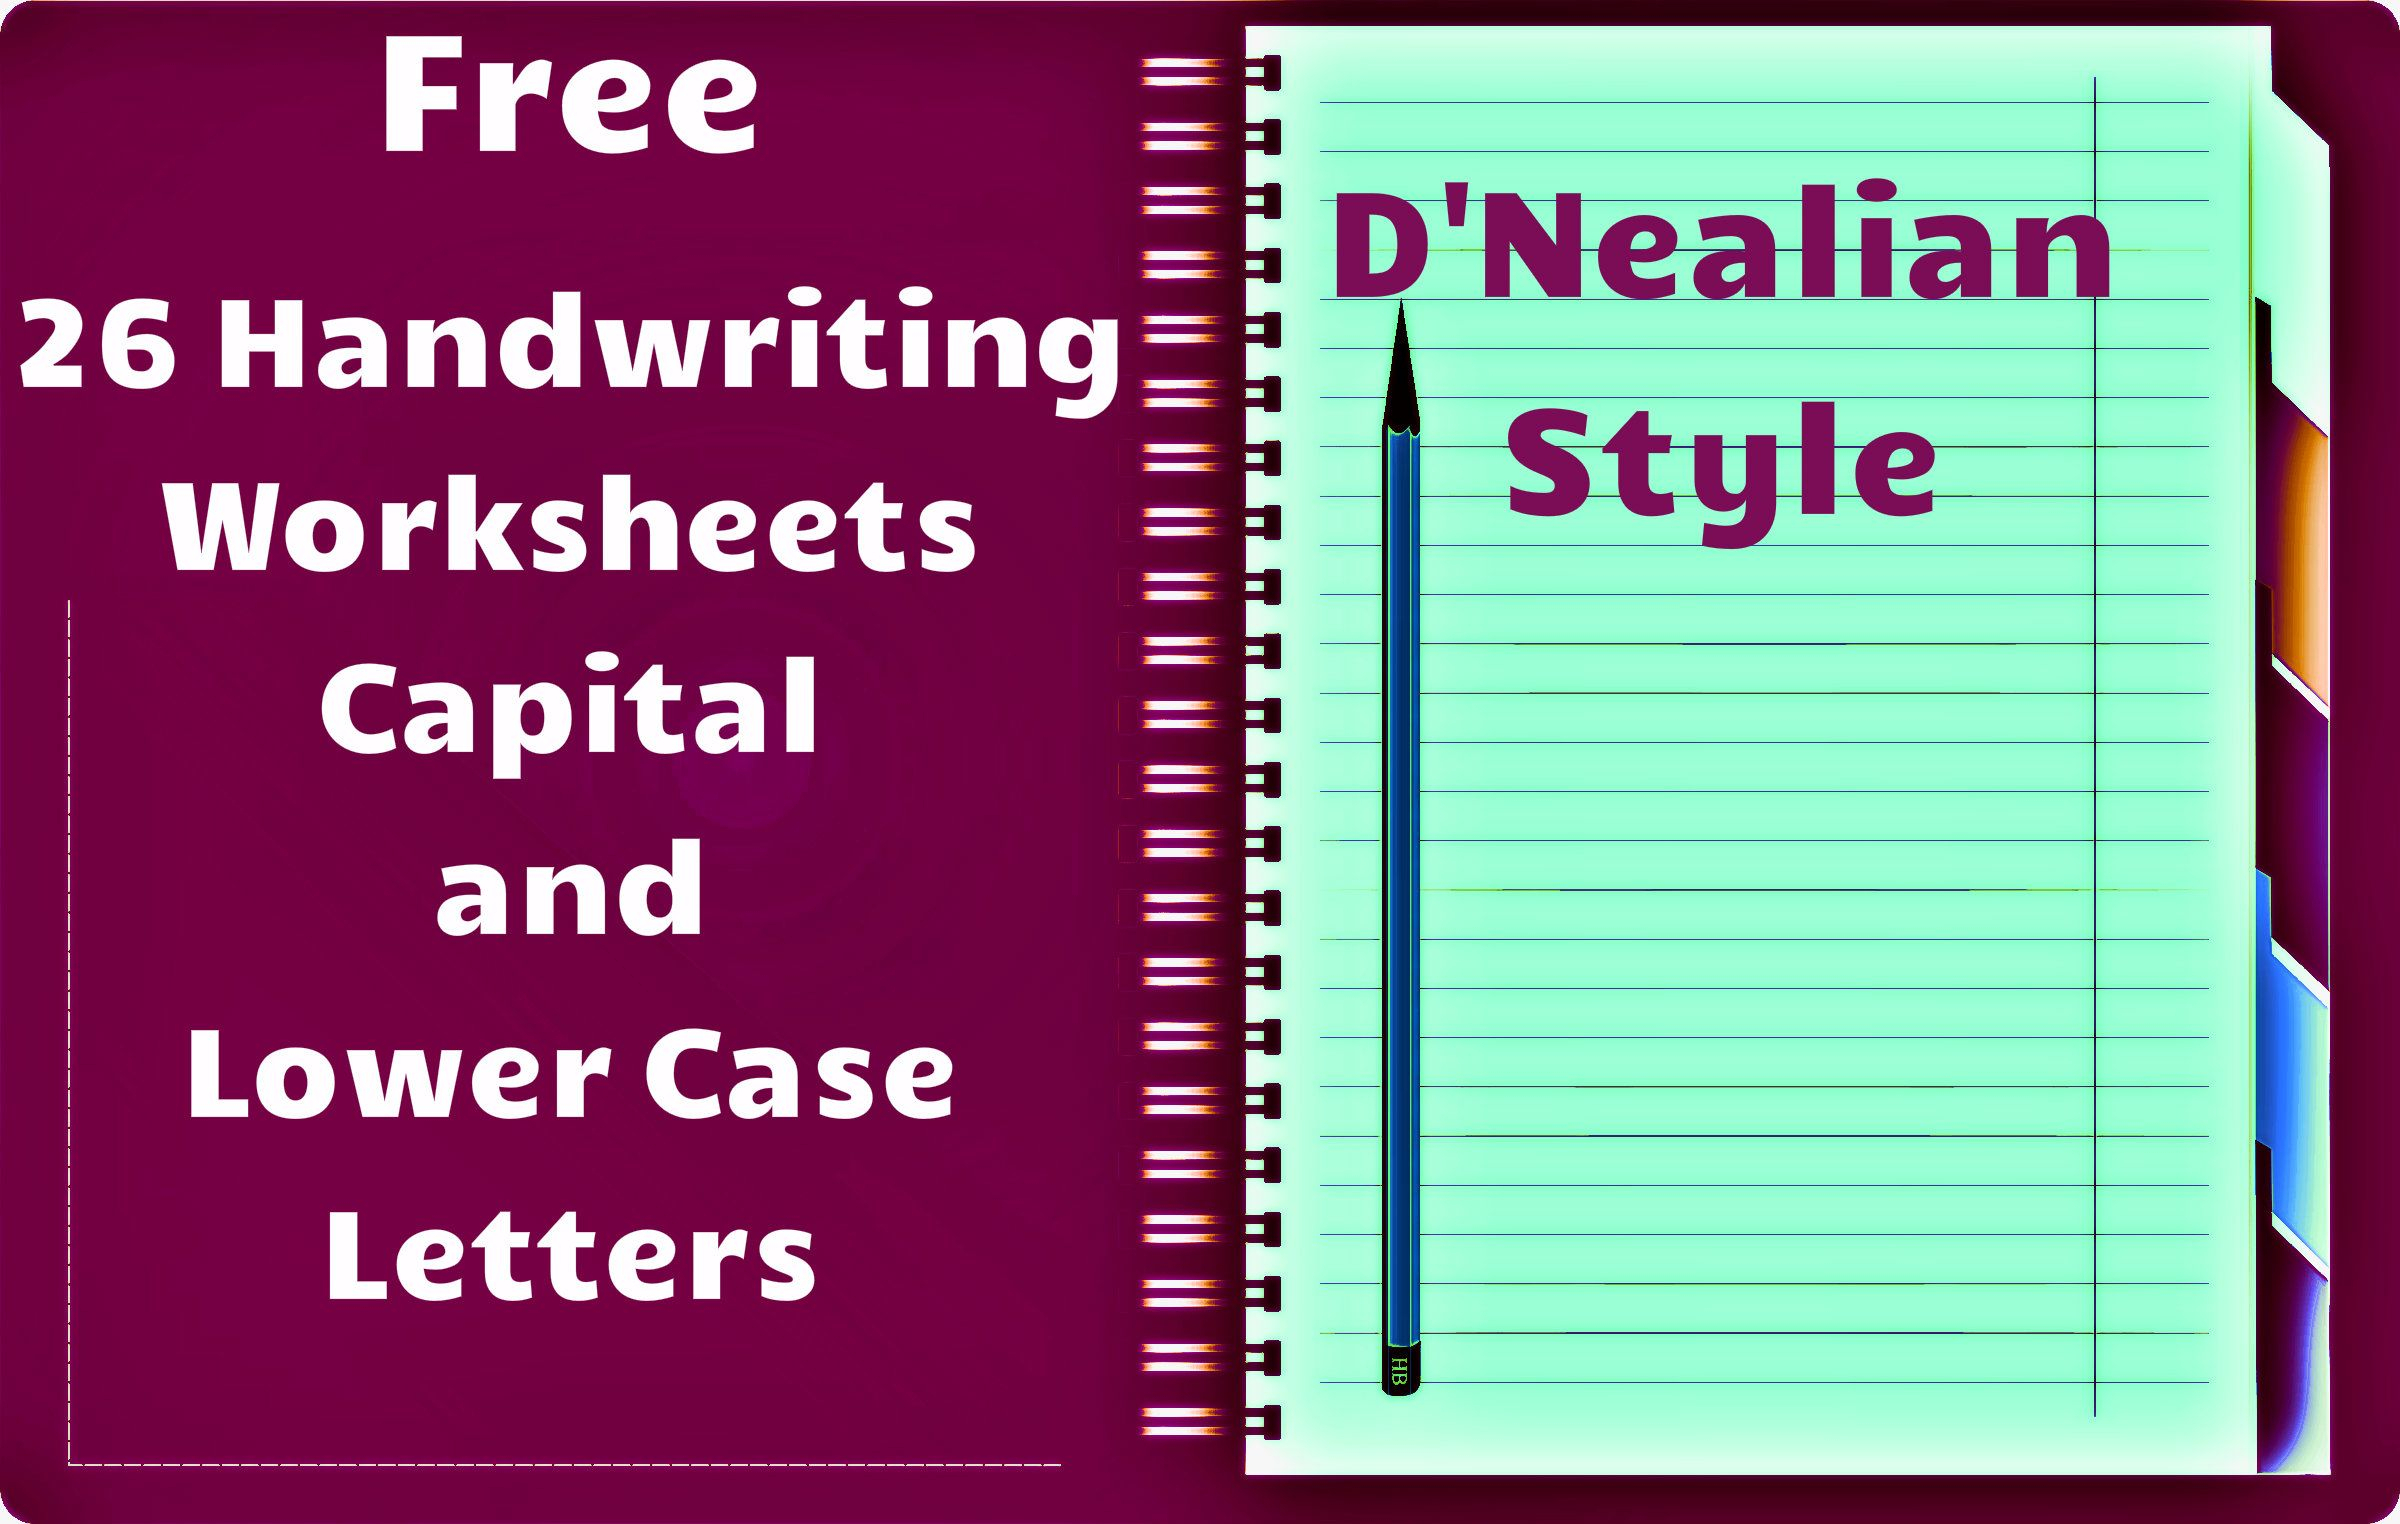 Free Handwriting Worksheets! Includes Worksheets For All for D'nealian Letter Tracing Worksheets